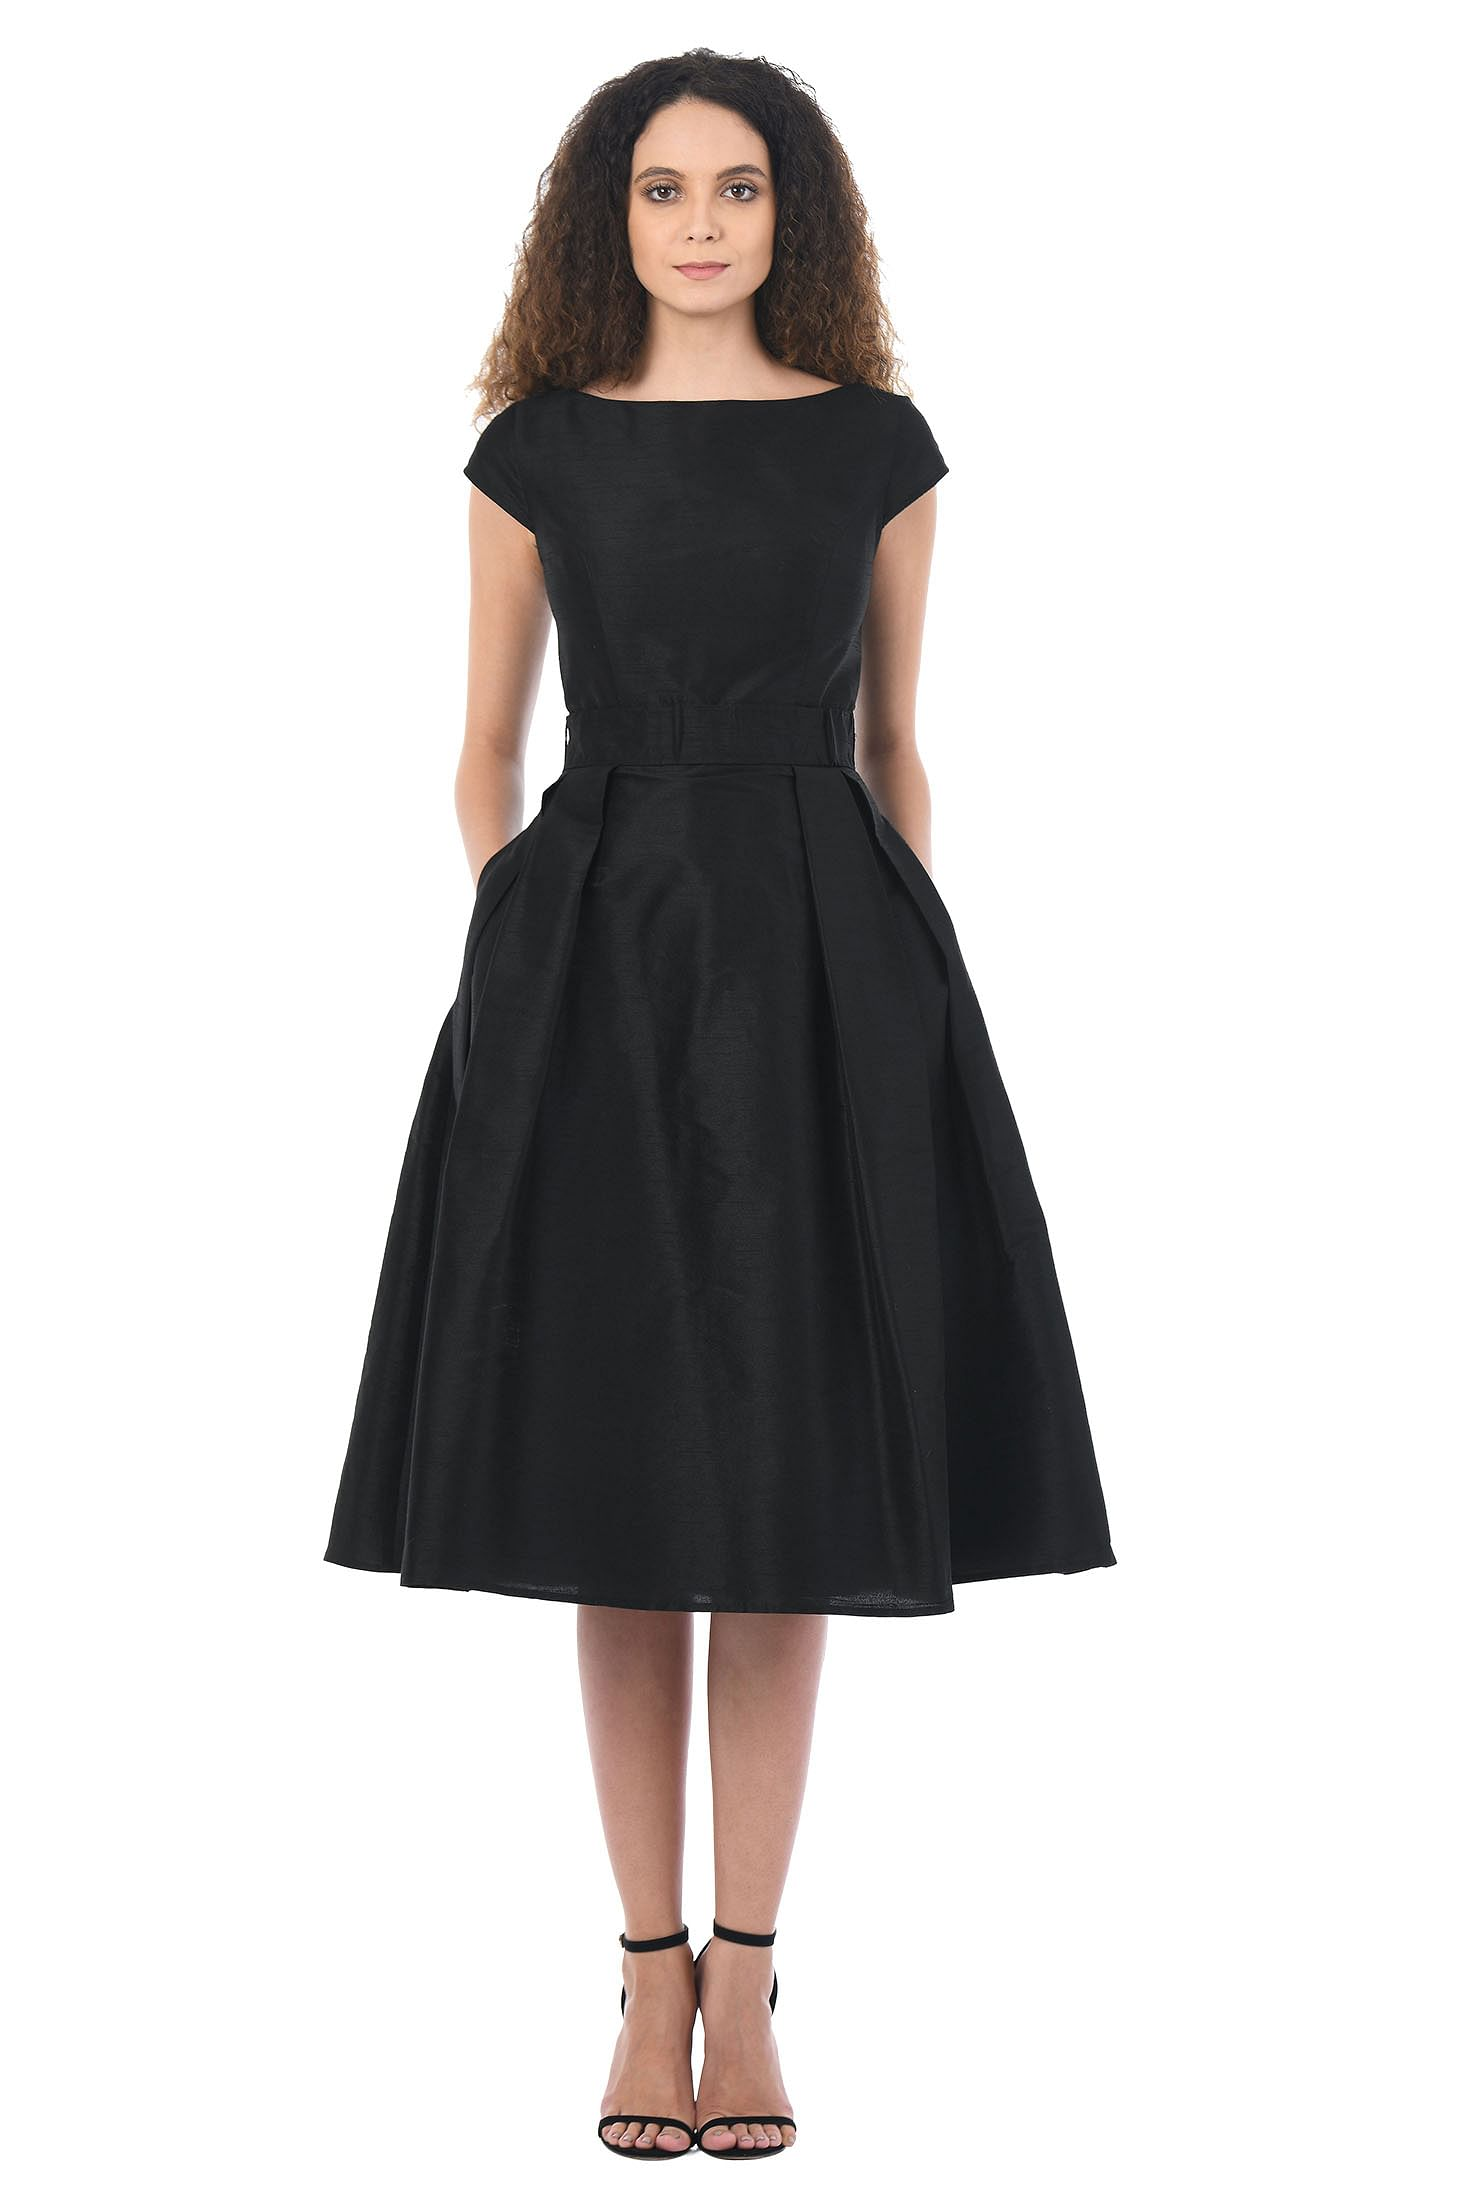 eShakti Women's Quincy dress